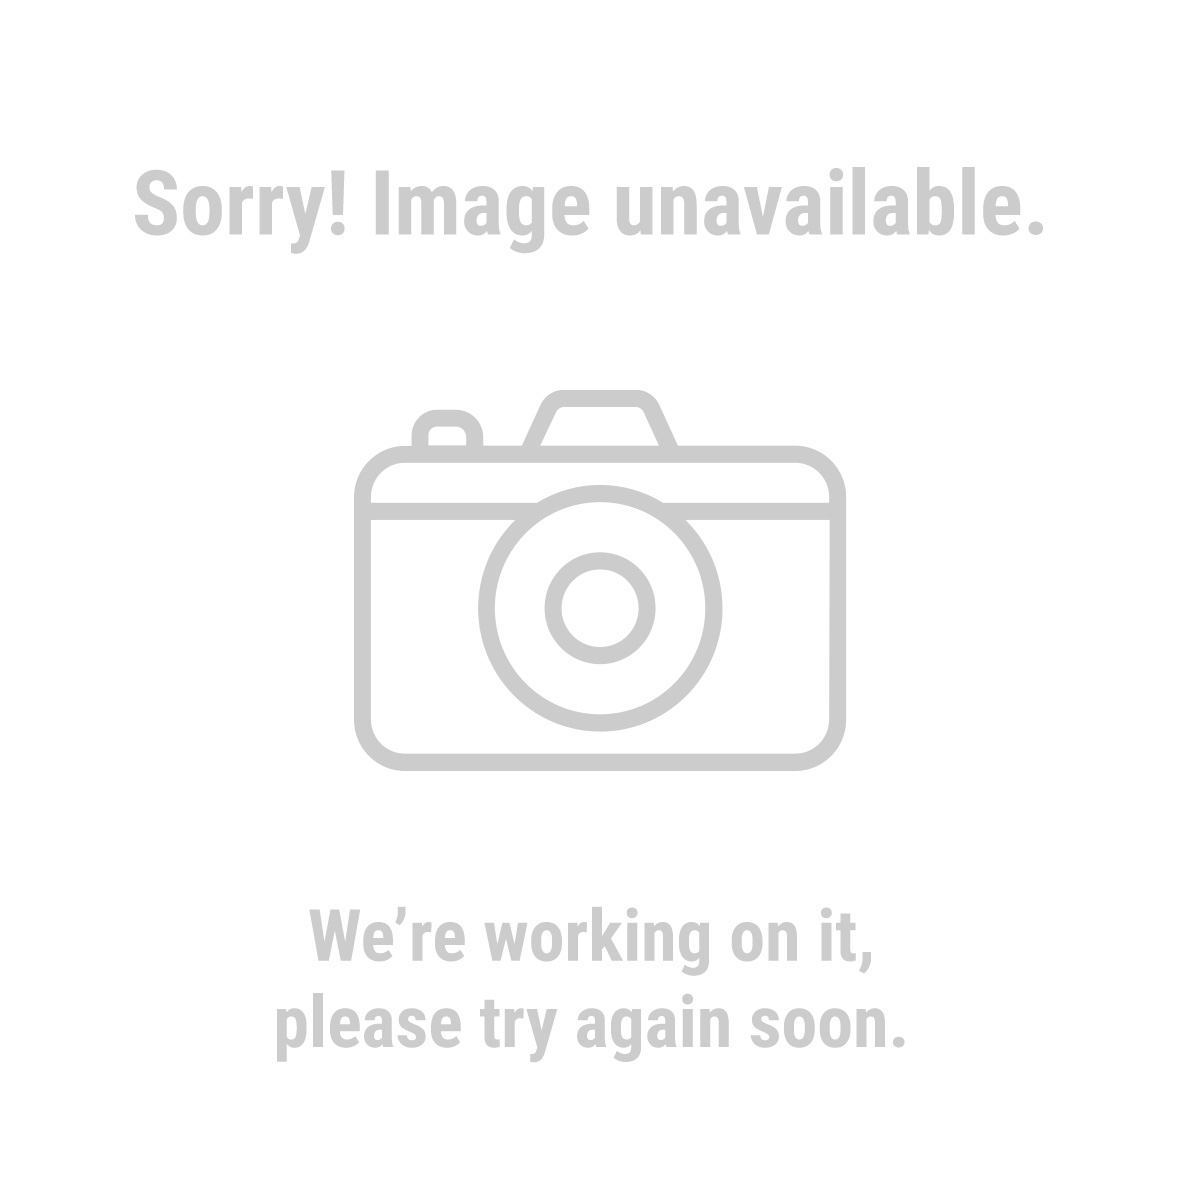 Central Pneumatic 66984 3/4 in. Heavy Duty Air Impact Wrench